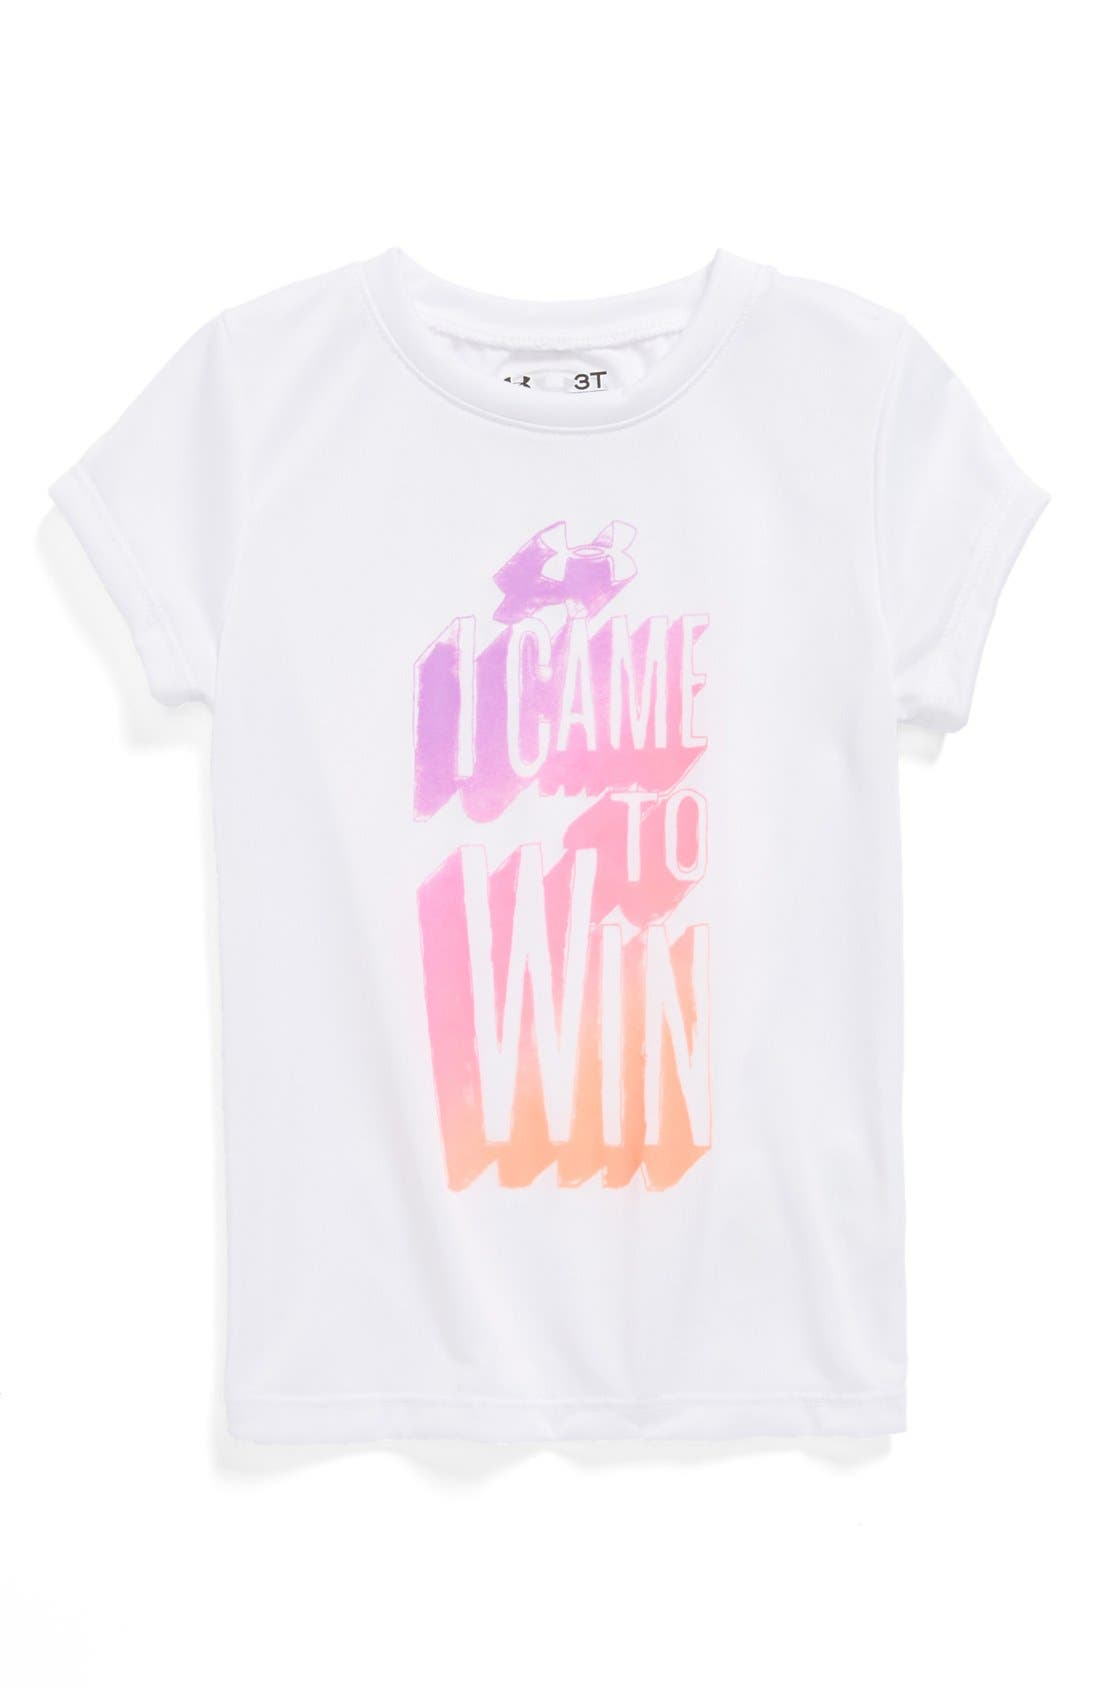 Main Image - Under Armour 'I Came to Win' Tee (Toddler Girls)